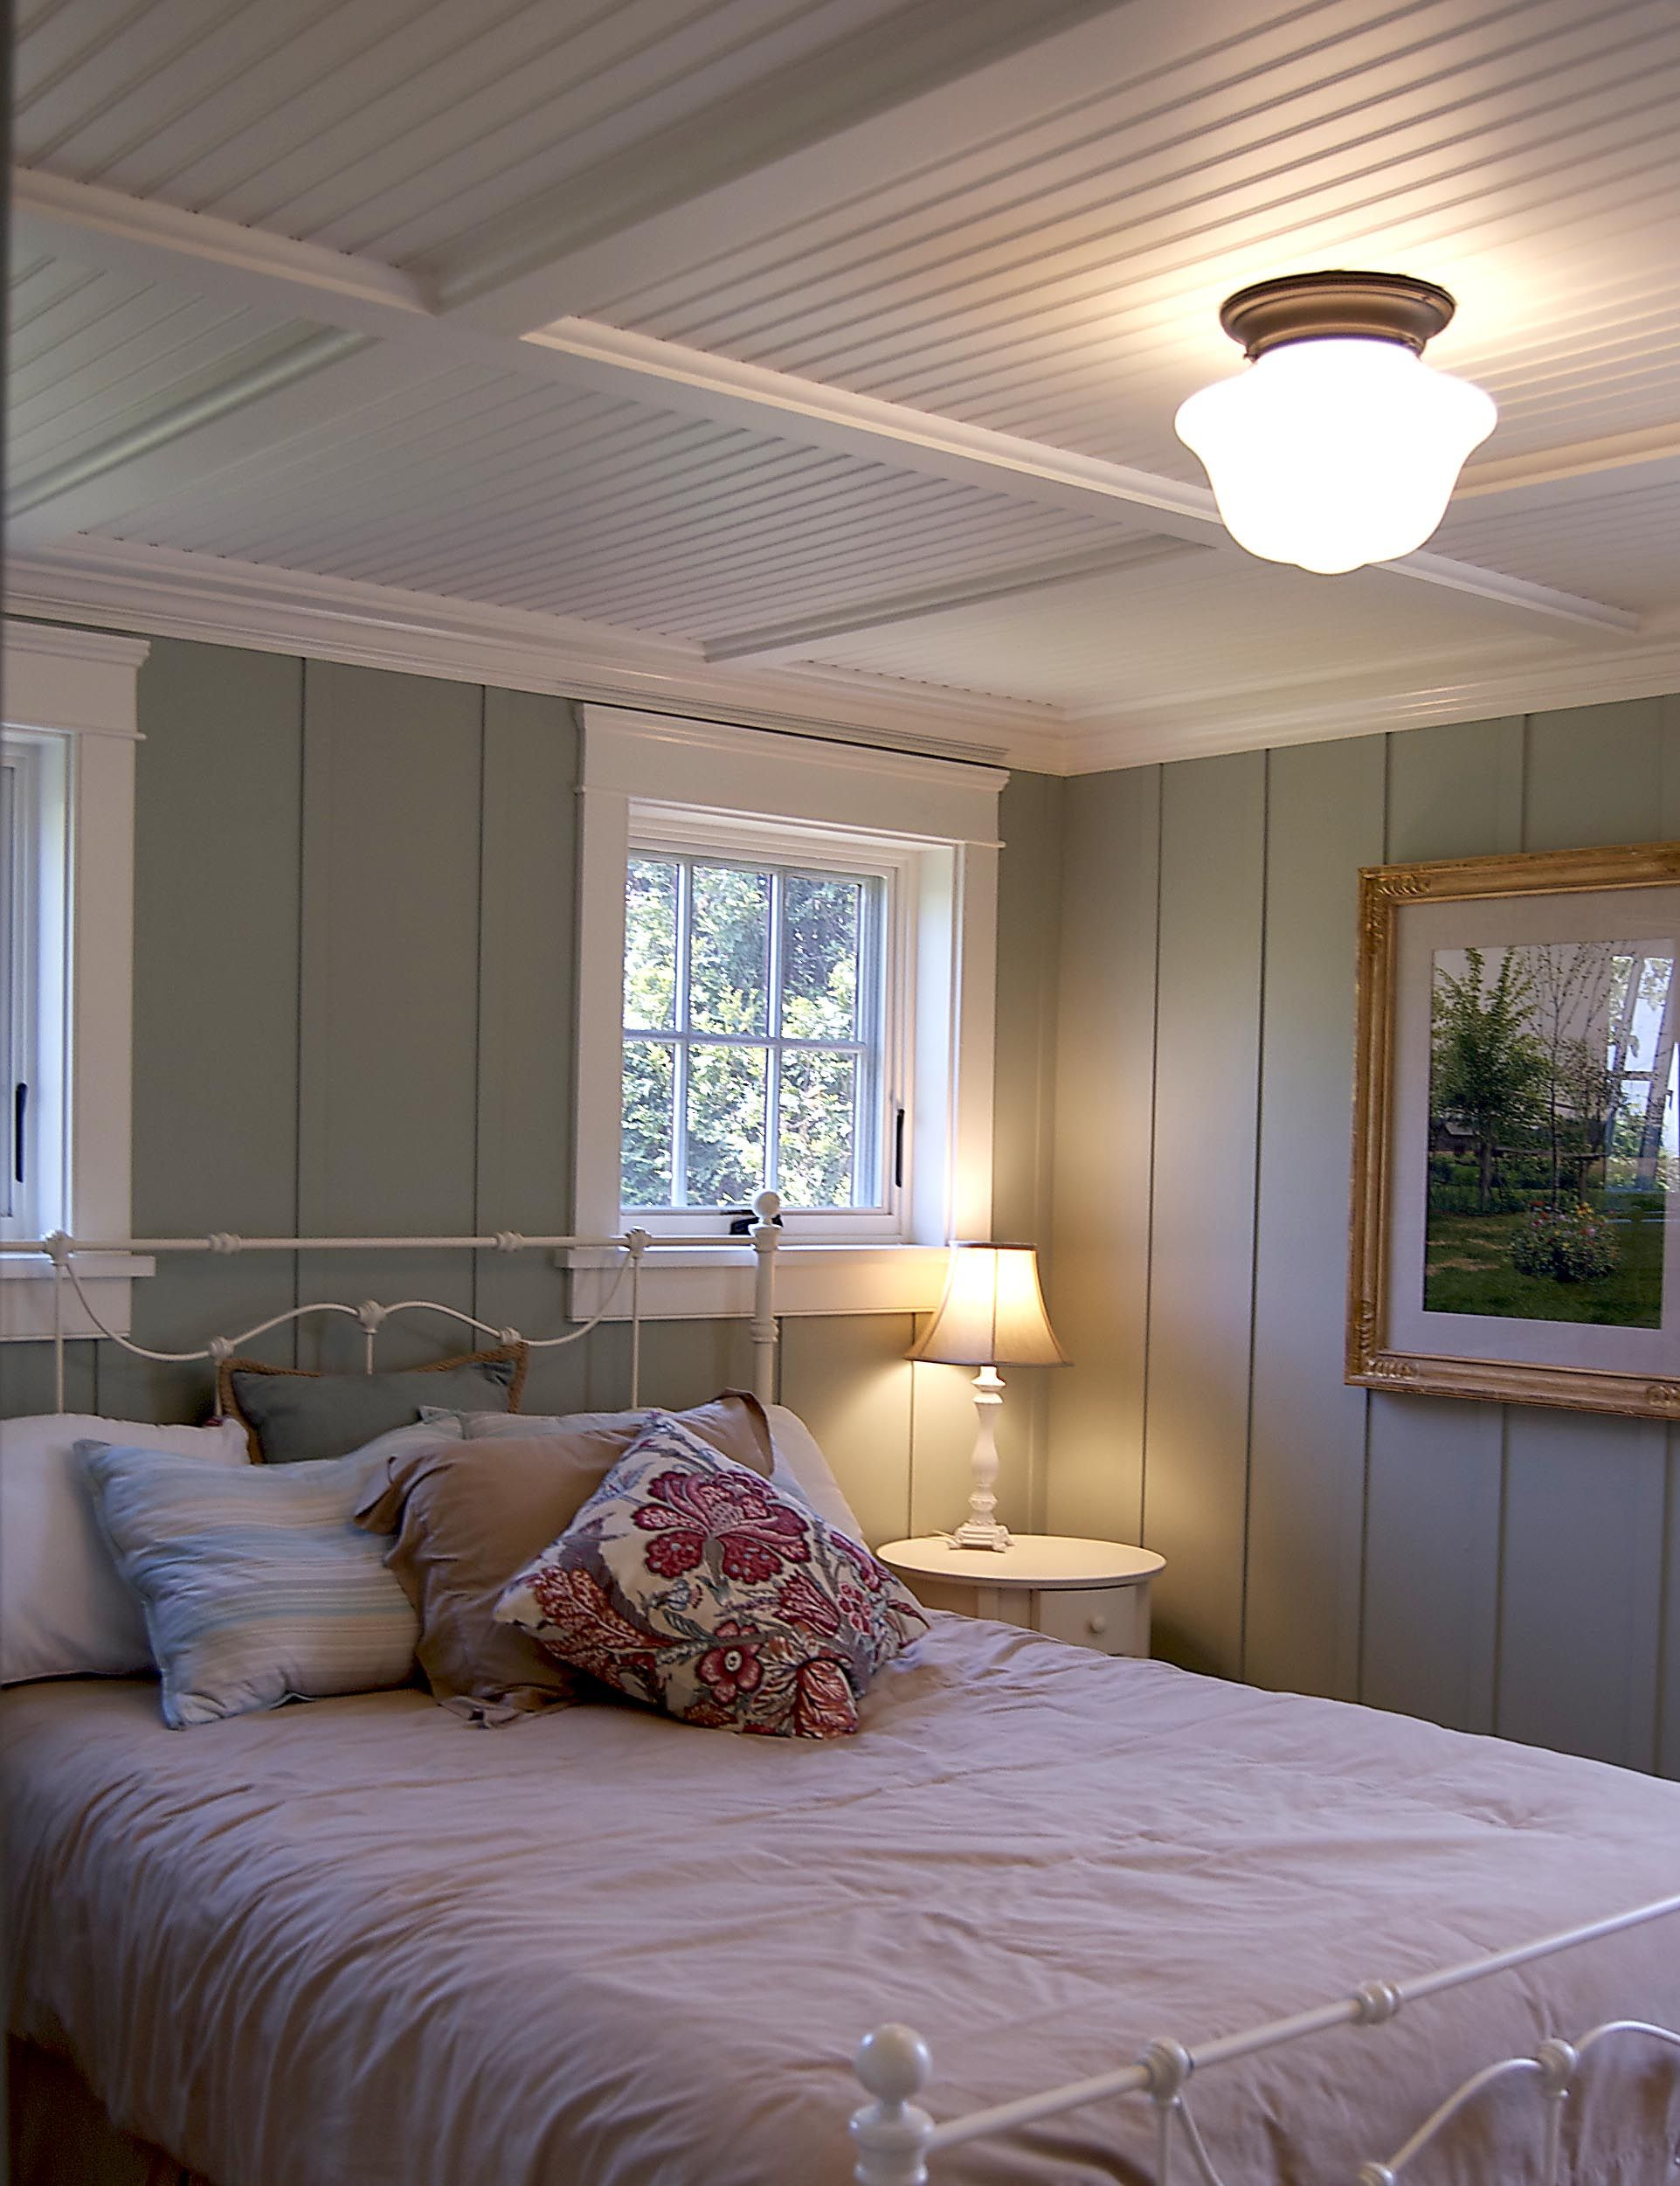 Gulfshoredesign.com Cottage Bedroom With Floor To Ceiling Painted Wood  Paneling. Pictures